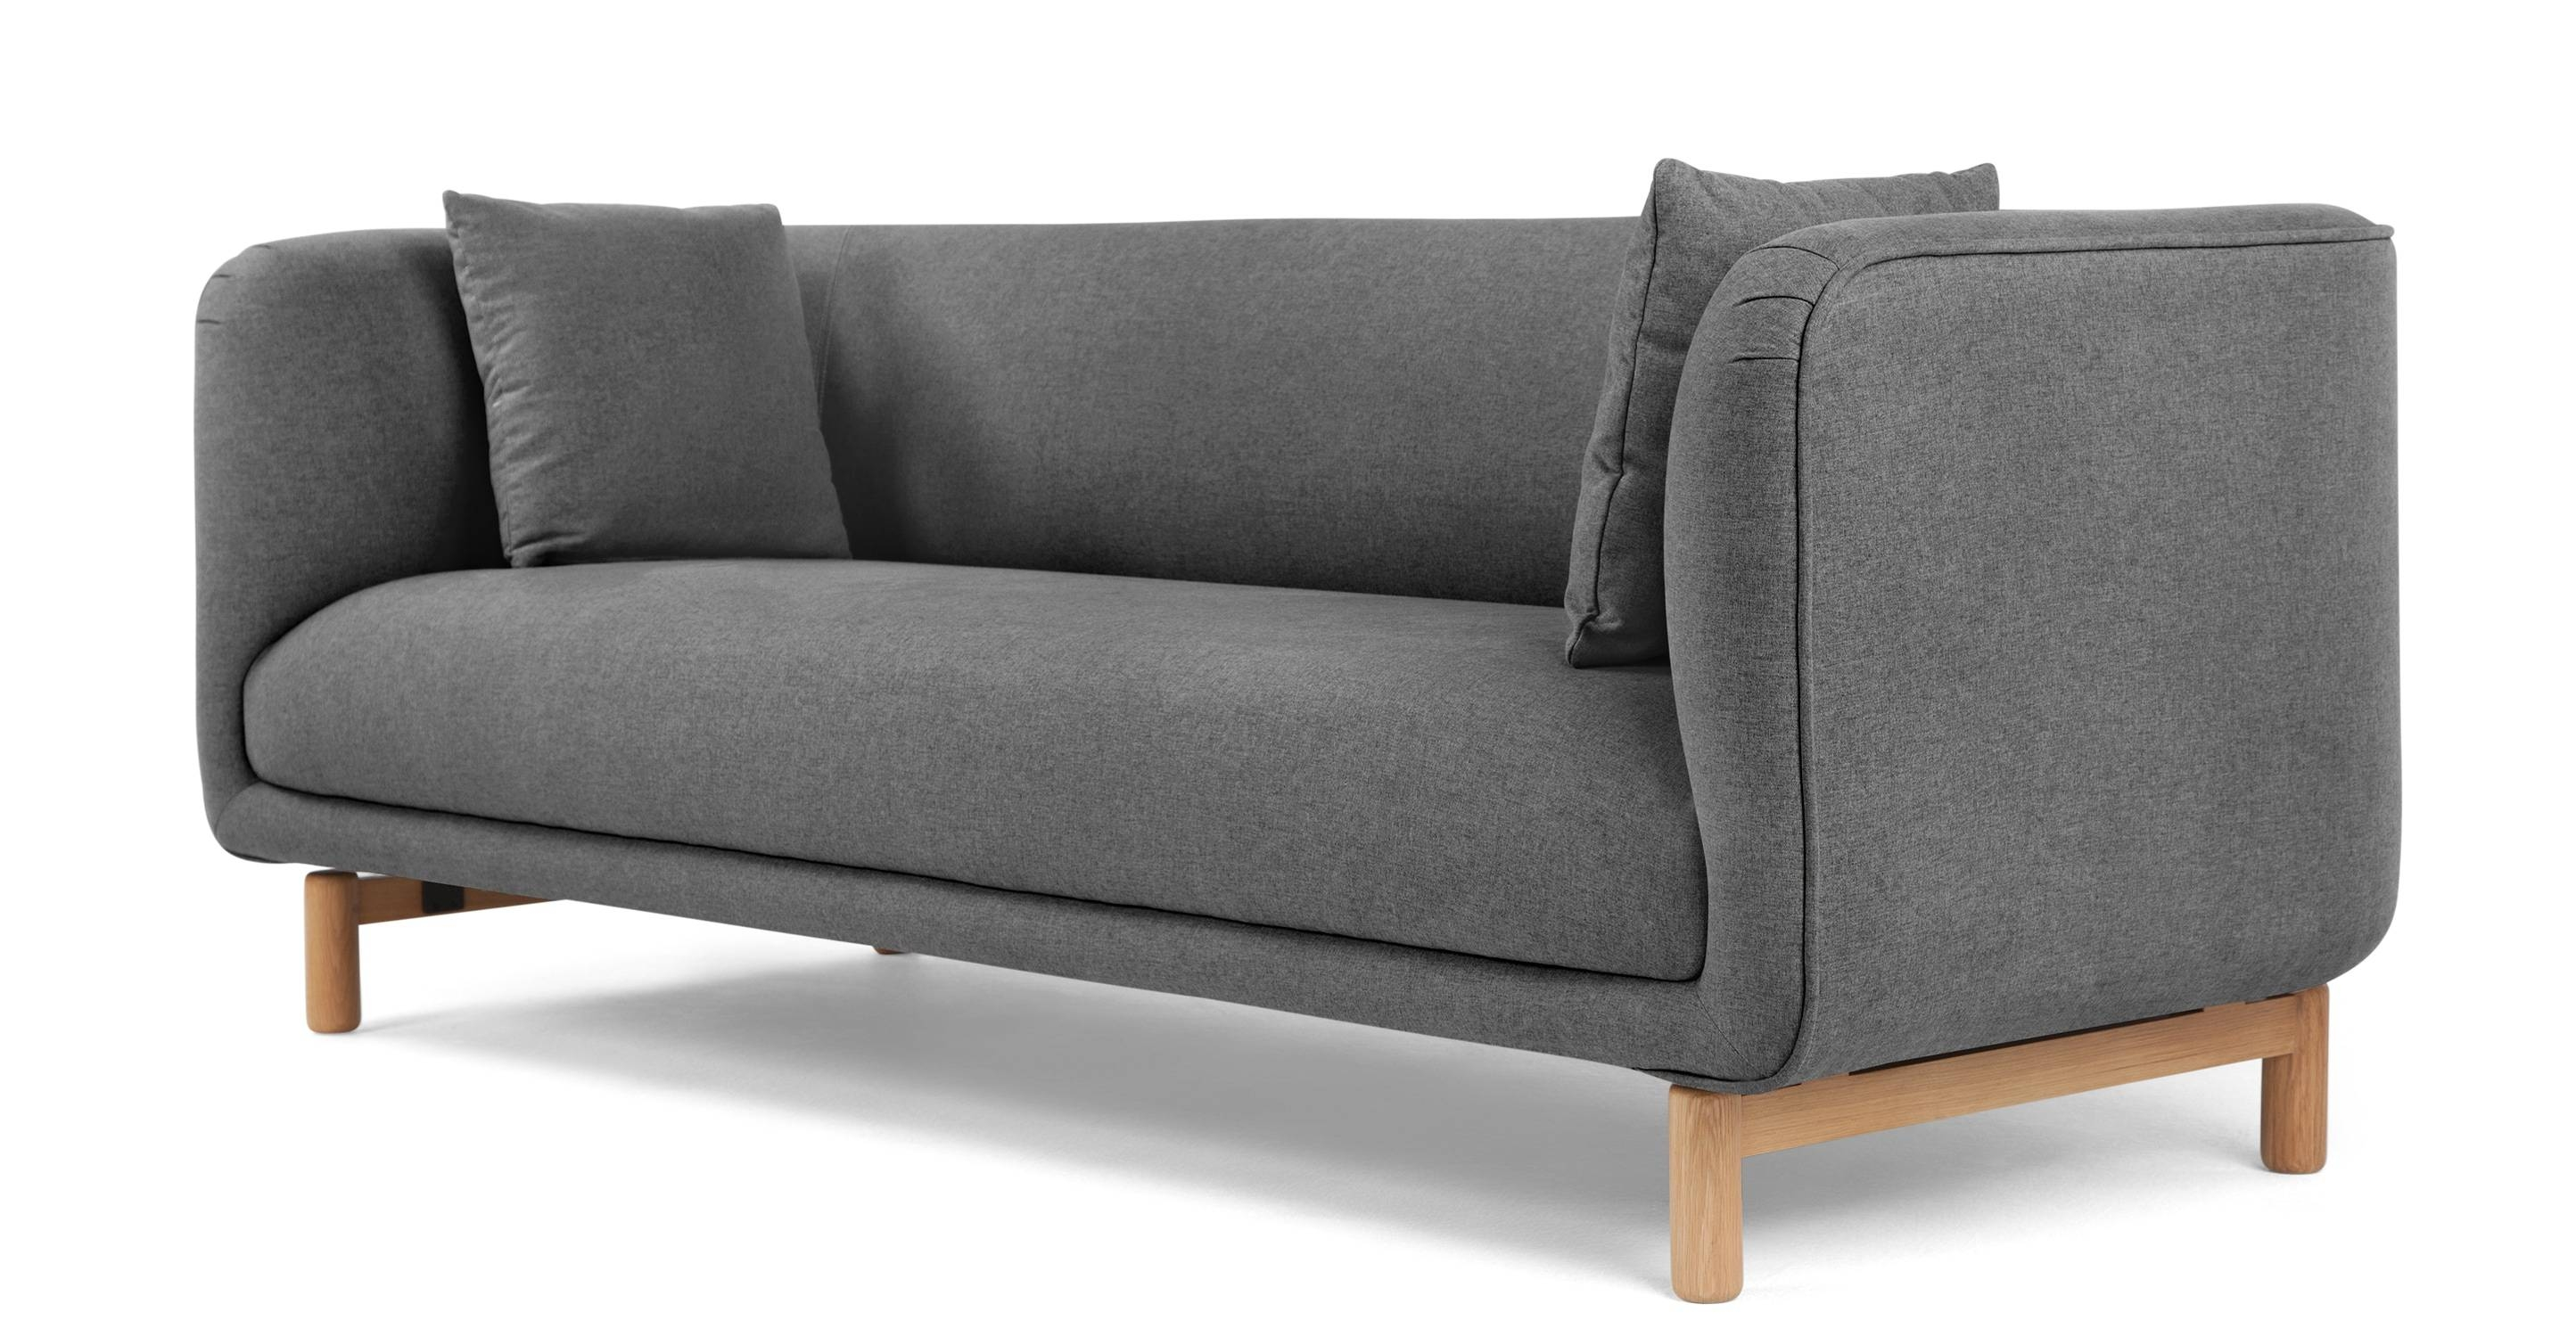 Gauteng For Sale - S3Net - Sectional Sofas Sale : S3Net throughout 3 Seater Sofas for Sale (Image 10 of 30)